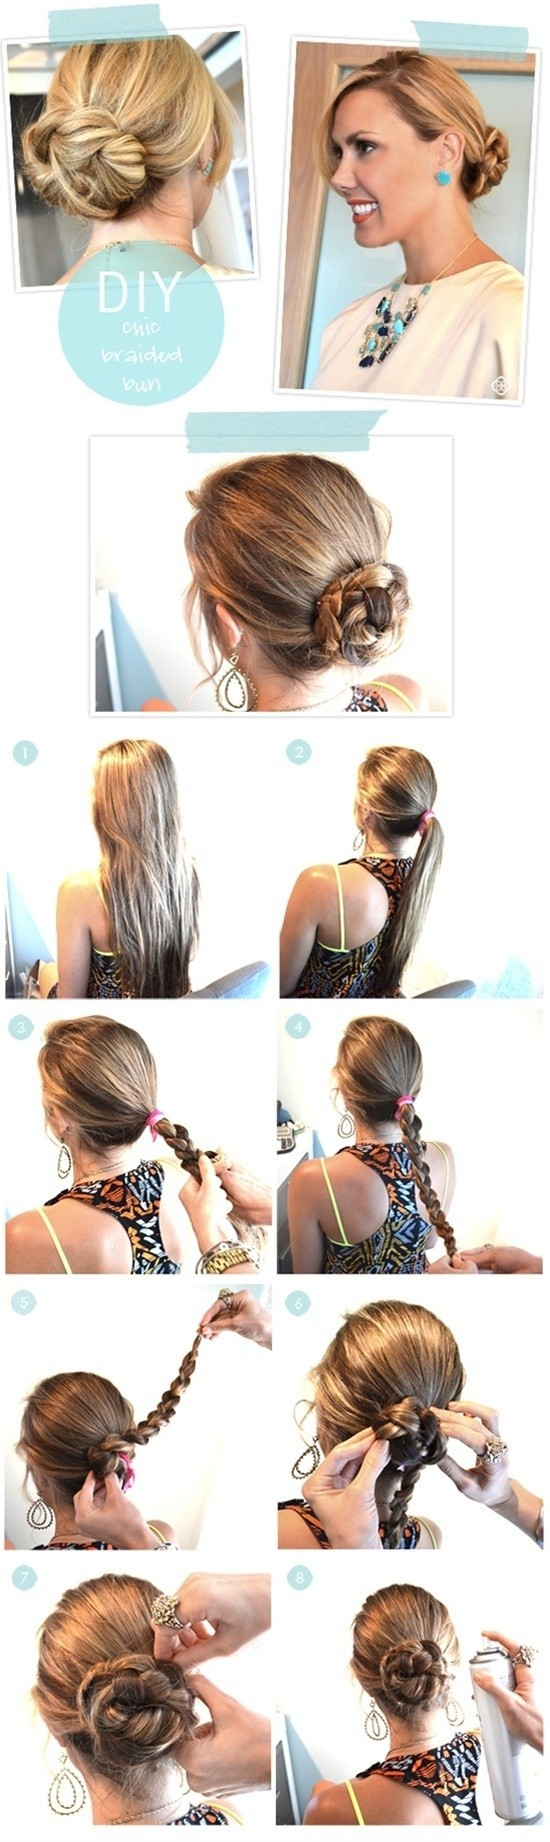 Braided Bun Tutorial for Long Hair